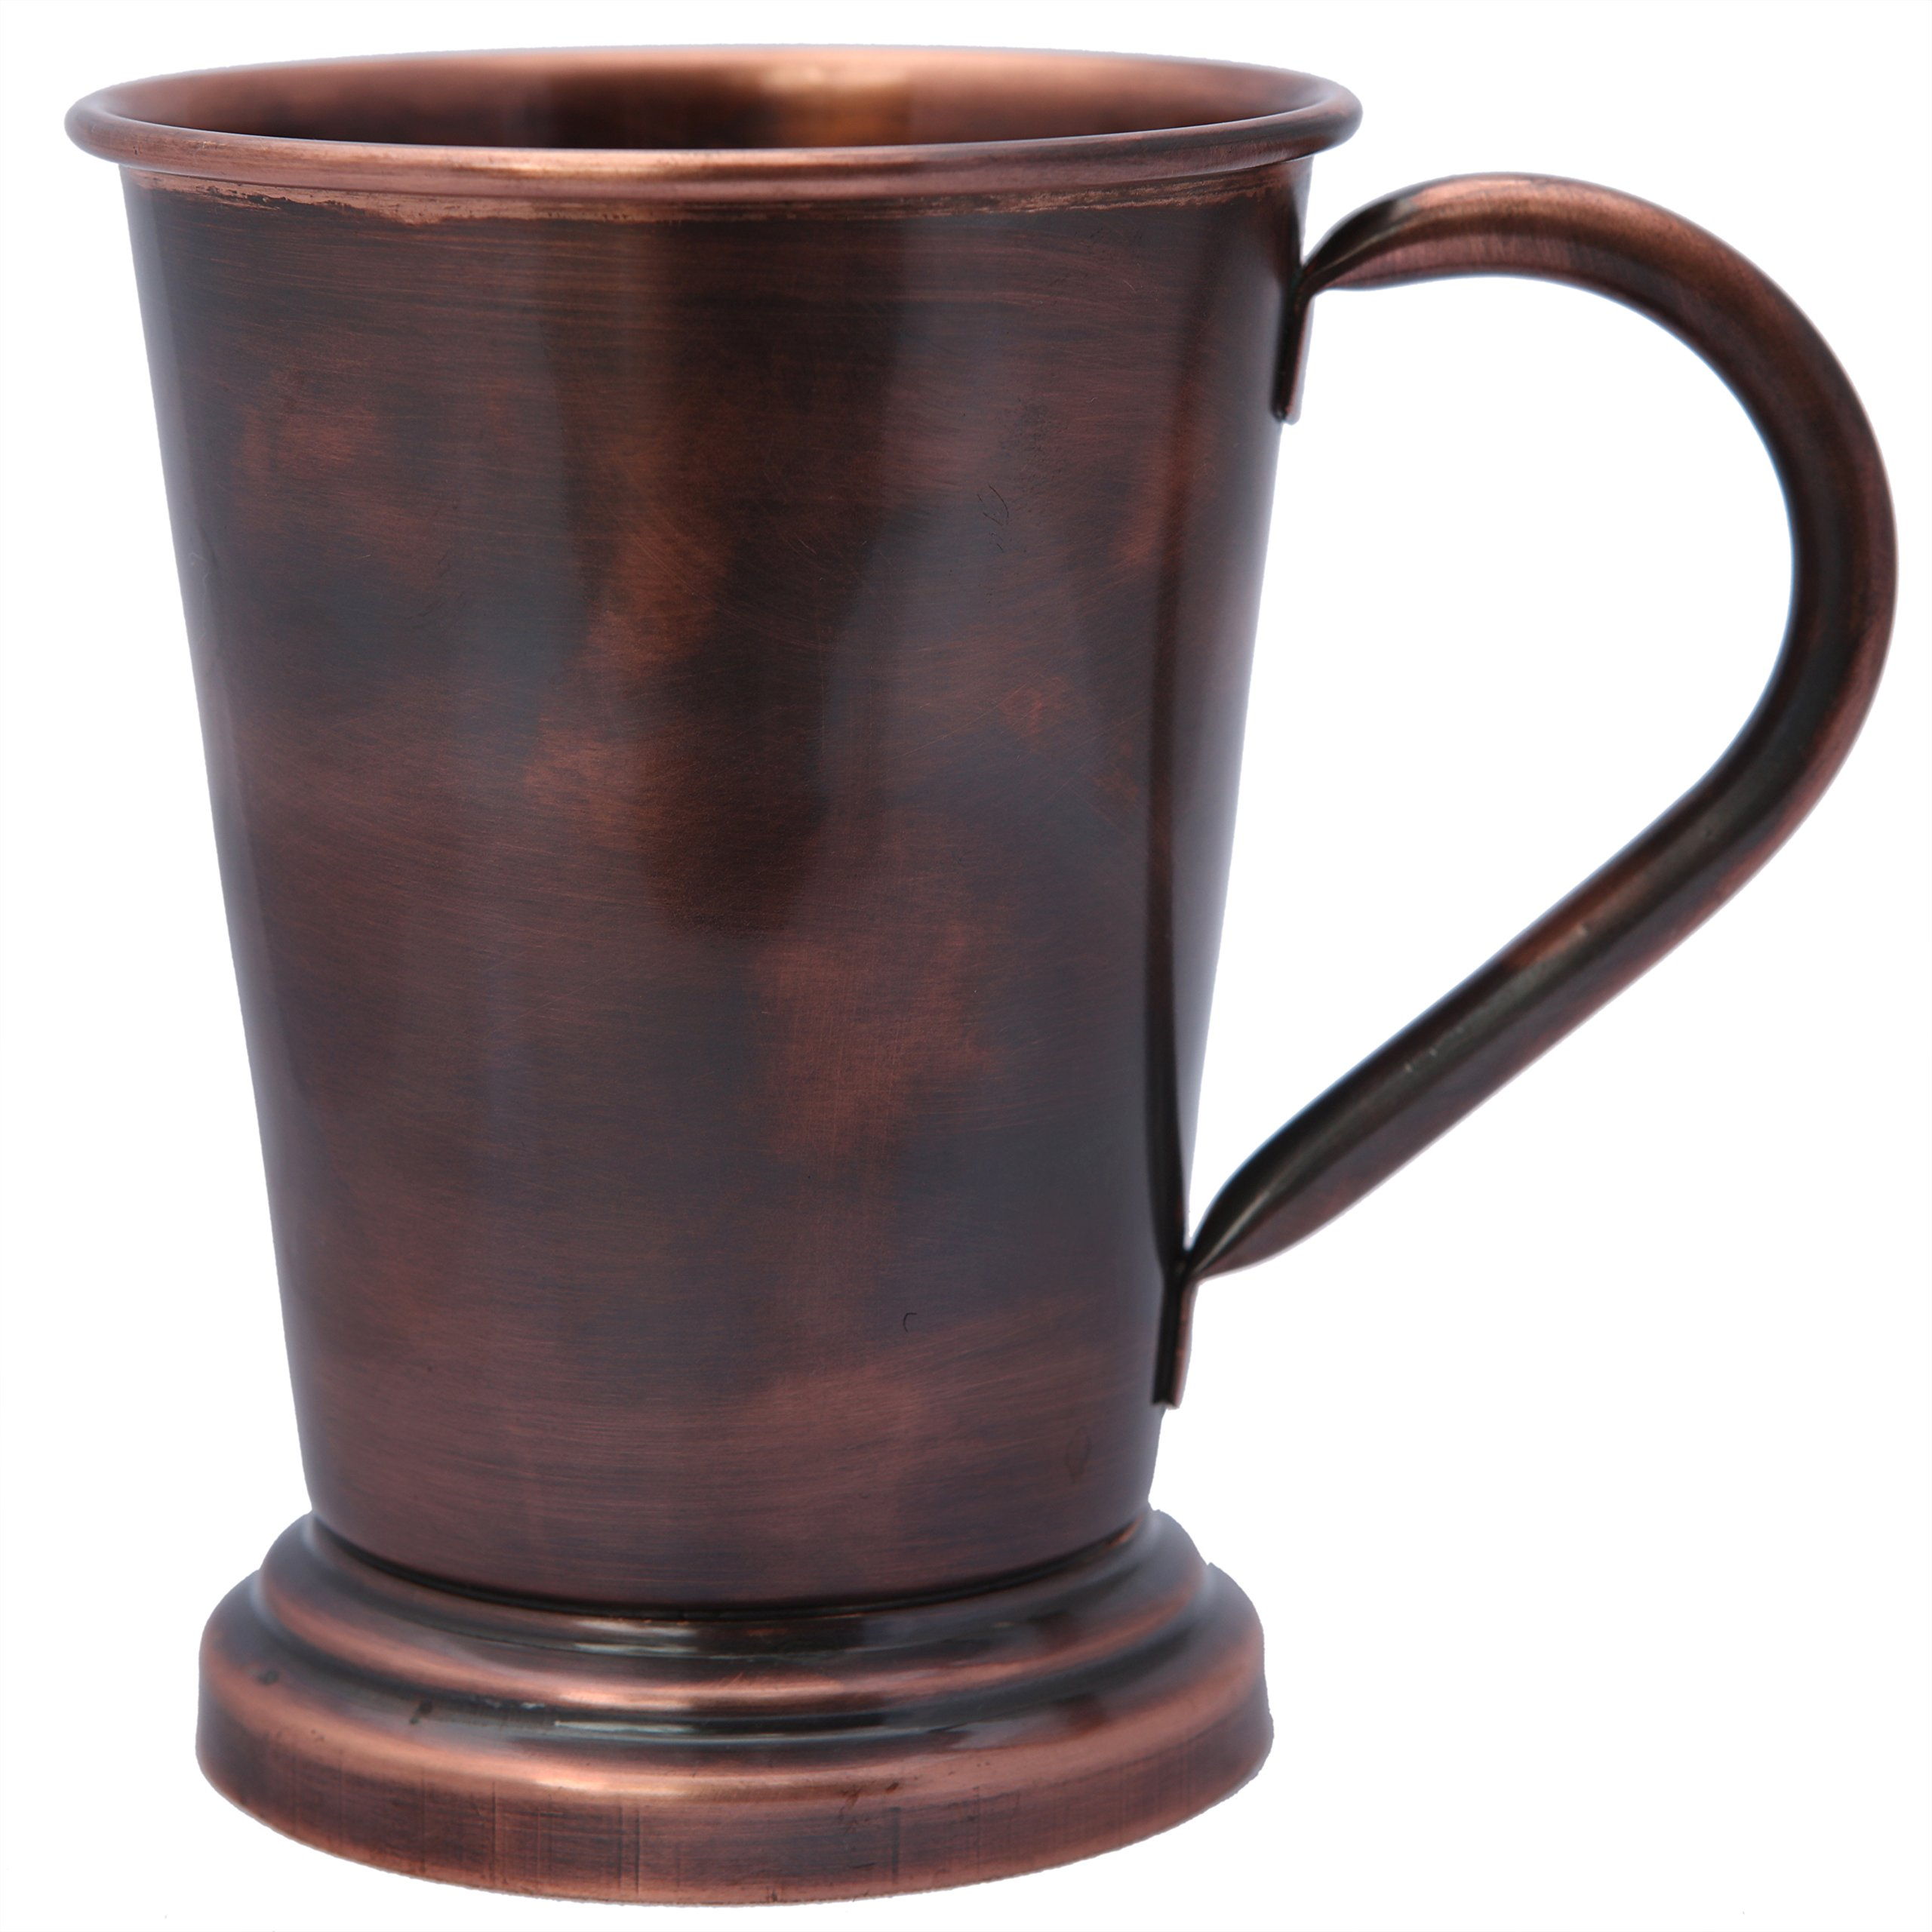 Melange 100% Authentic Copper Artisan Collection Moscow Mule Mug, Antique Finish, Size-16 Oz, Set of 4 Mugs by Melange